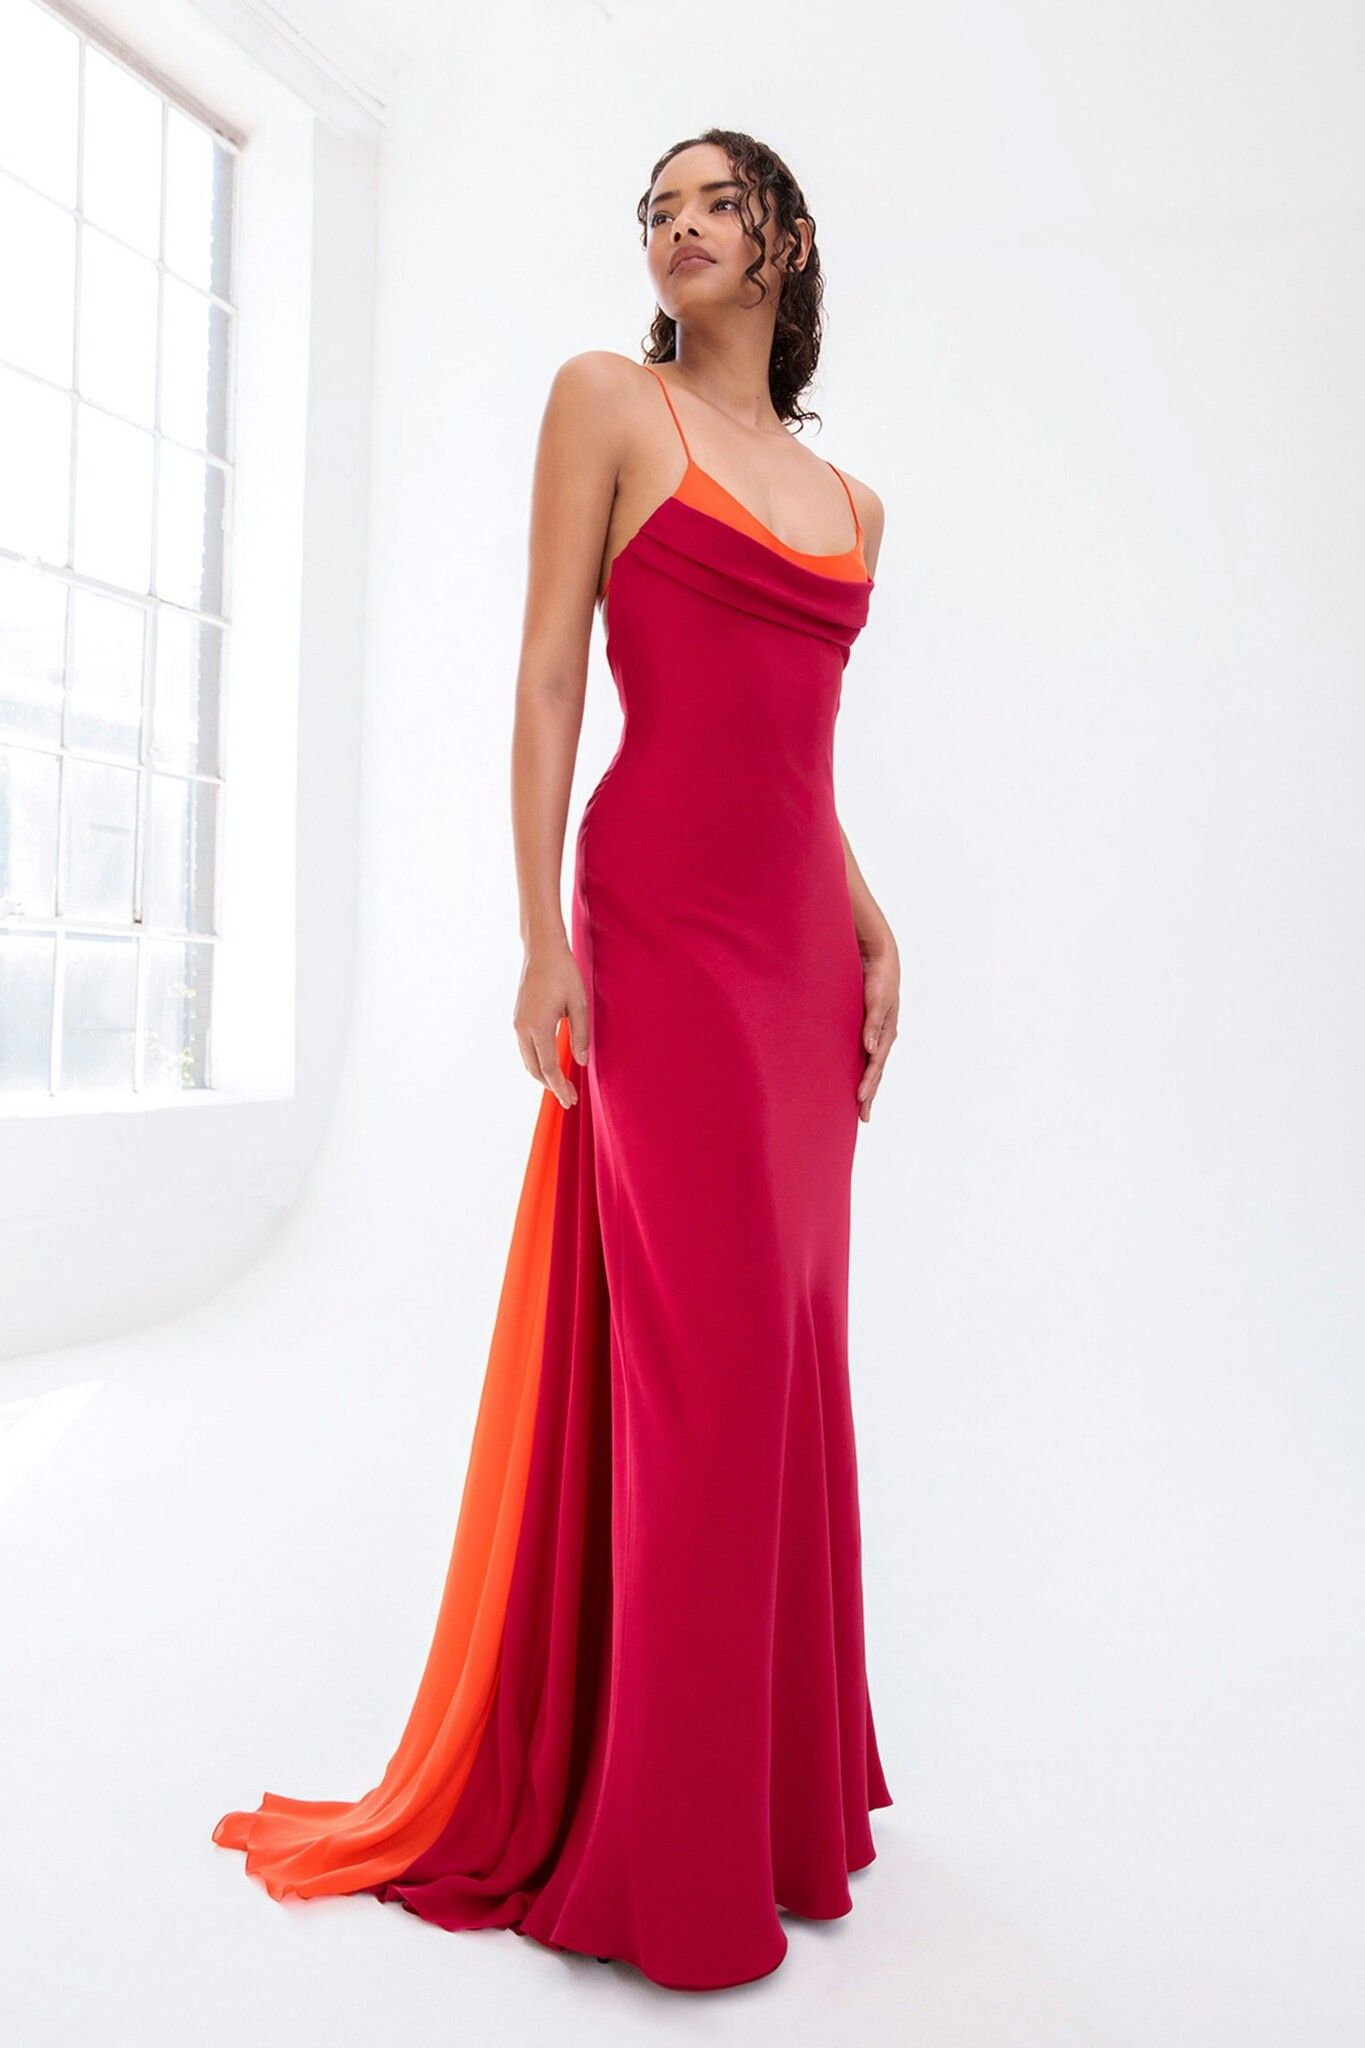 Pin by kati hink on styles pinterest gowns prom and formal